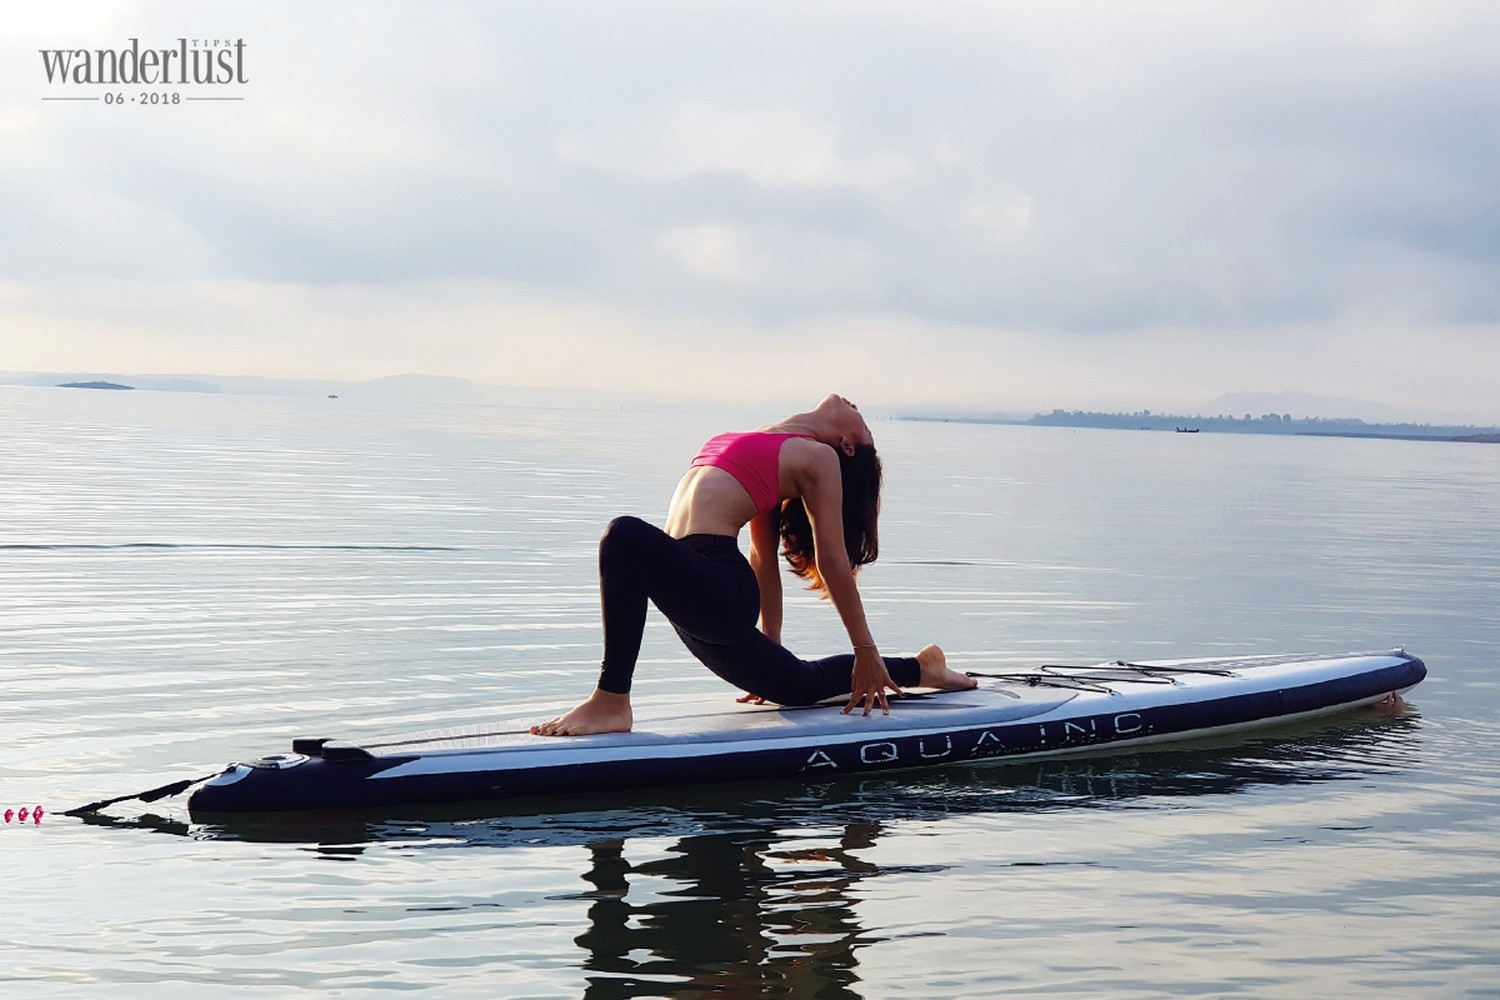 ca1bebf5a7 Stand – up paddle boarding to explore Vietnam (part 1) - Wanderlust ...